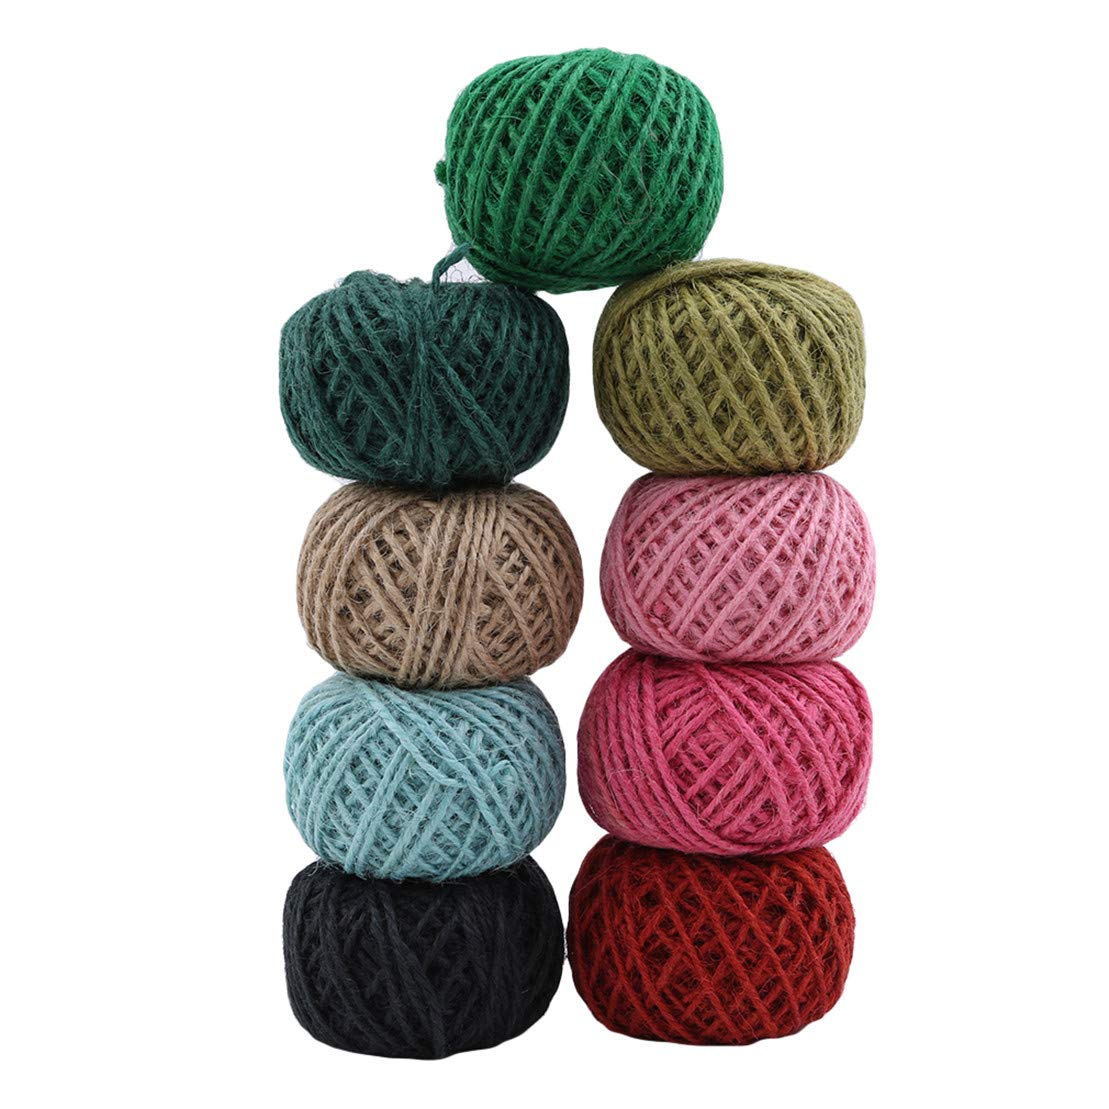 DIY Crafts Kissherely 30 Meters Jute Twine Cord Hemp Rope Natural Burlap Hessian Rope for Gift Wrapping Decorations Black